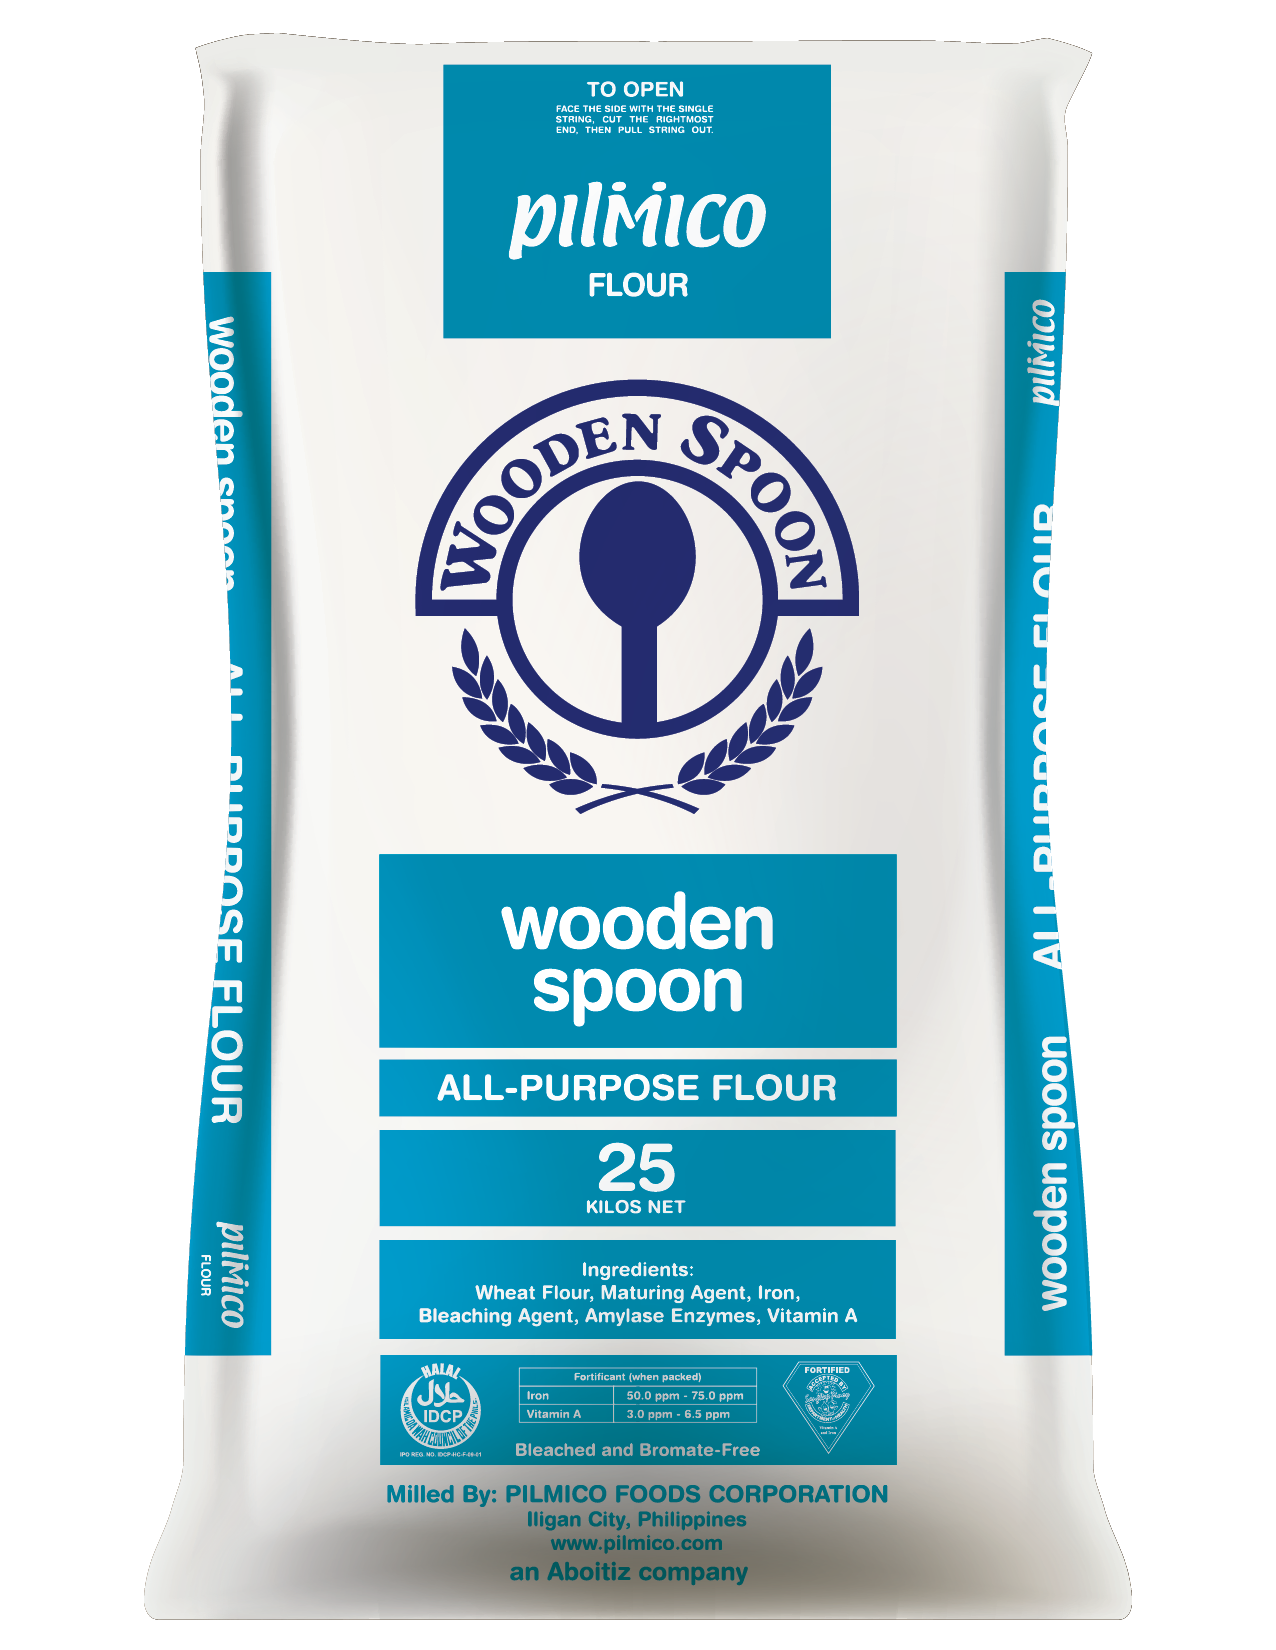 Pilmico Flour Sack 2018 - Wooden Spoon All Purpose Flour 25kg